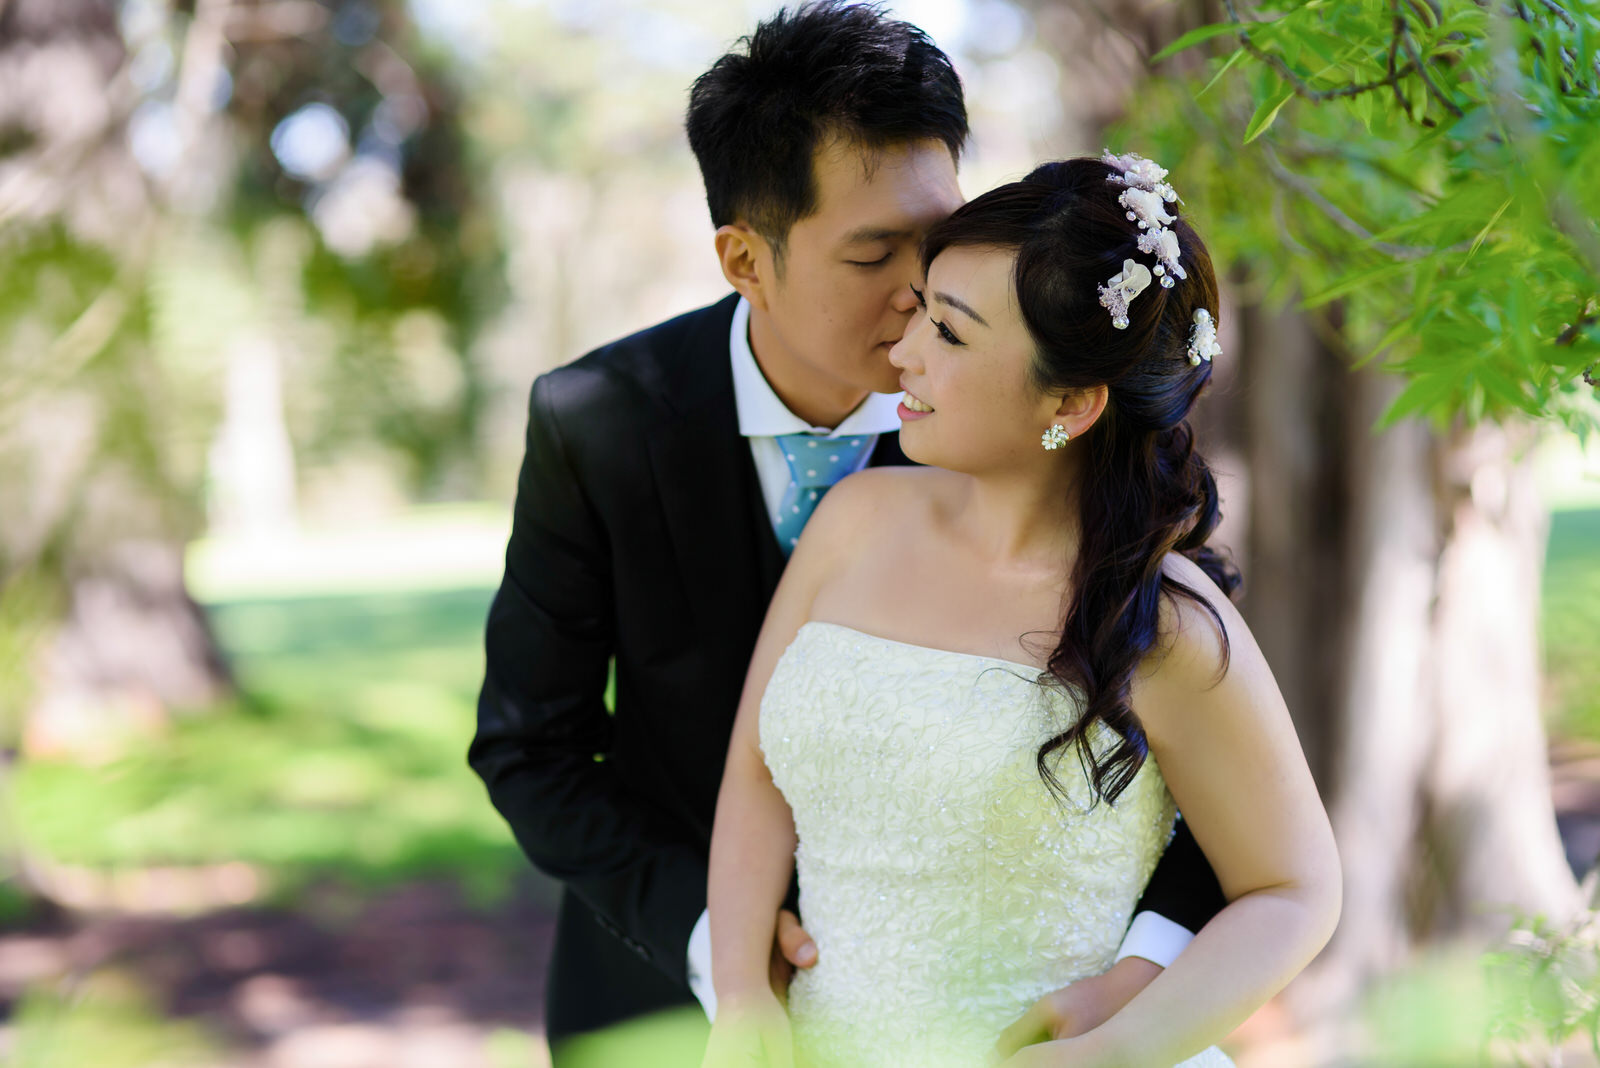 20160928_Misaki&Sam_Prewedding_2938_edit.jpg